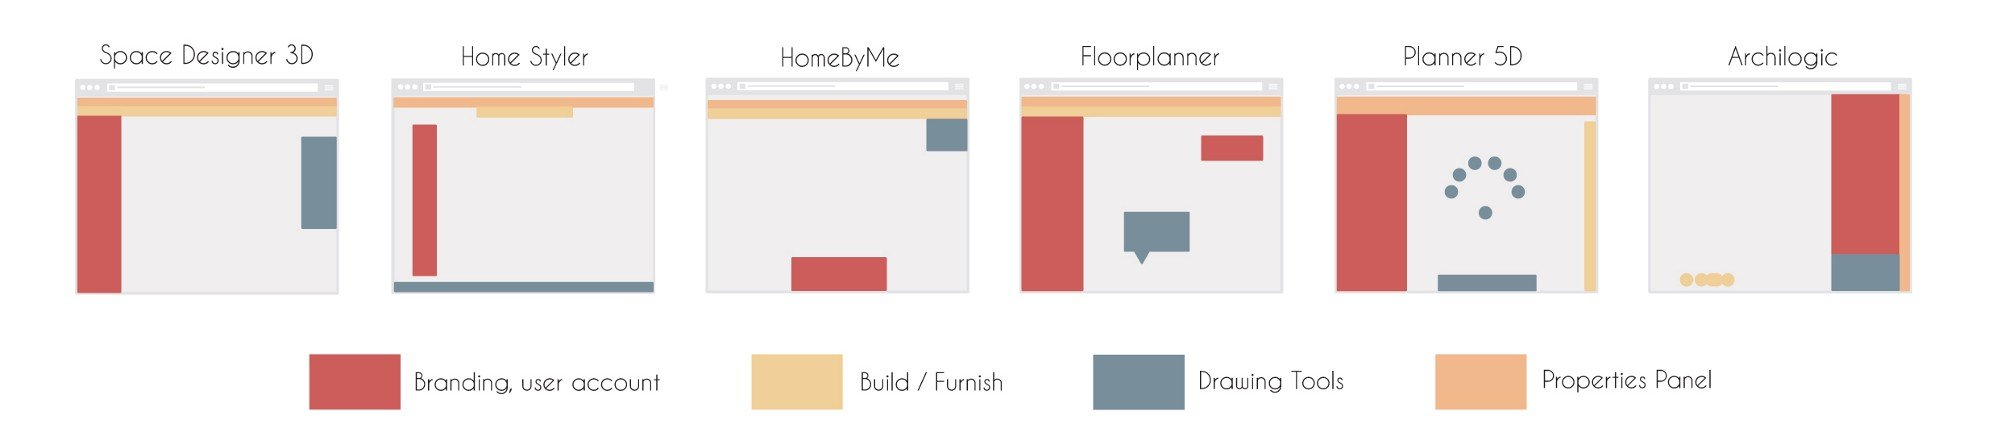 online interior design software interfaces compared